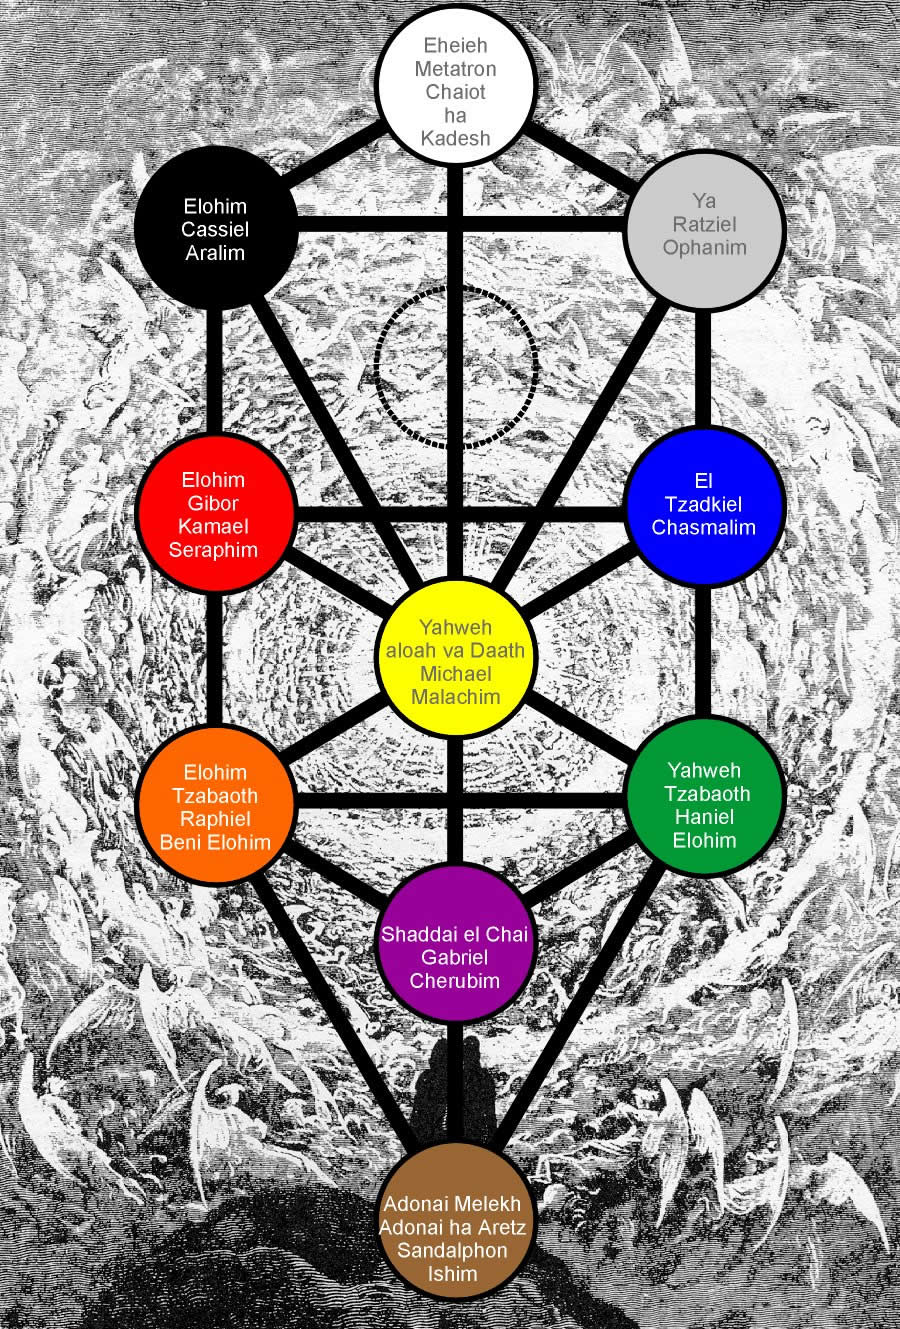 Holy Names And The Tree Of Life Hermetic Kabbalah 1069984 Hd Wallpaper Backgrounds Download Its basic design is based on descriptions given in the sefer yetsirah, or book of creation, and expanded upon in the enourmous kabbalistic text zohar, the book of splendour. holy names and the tree of life